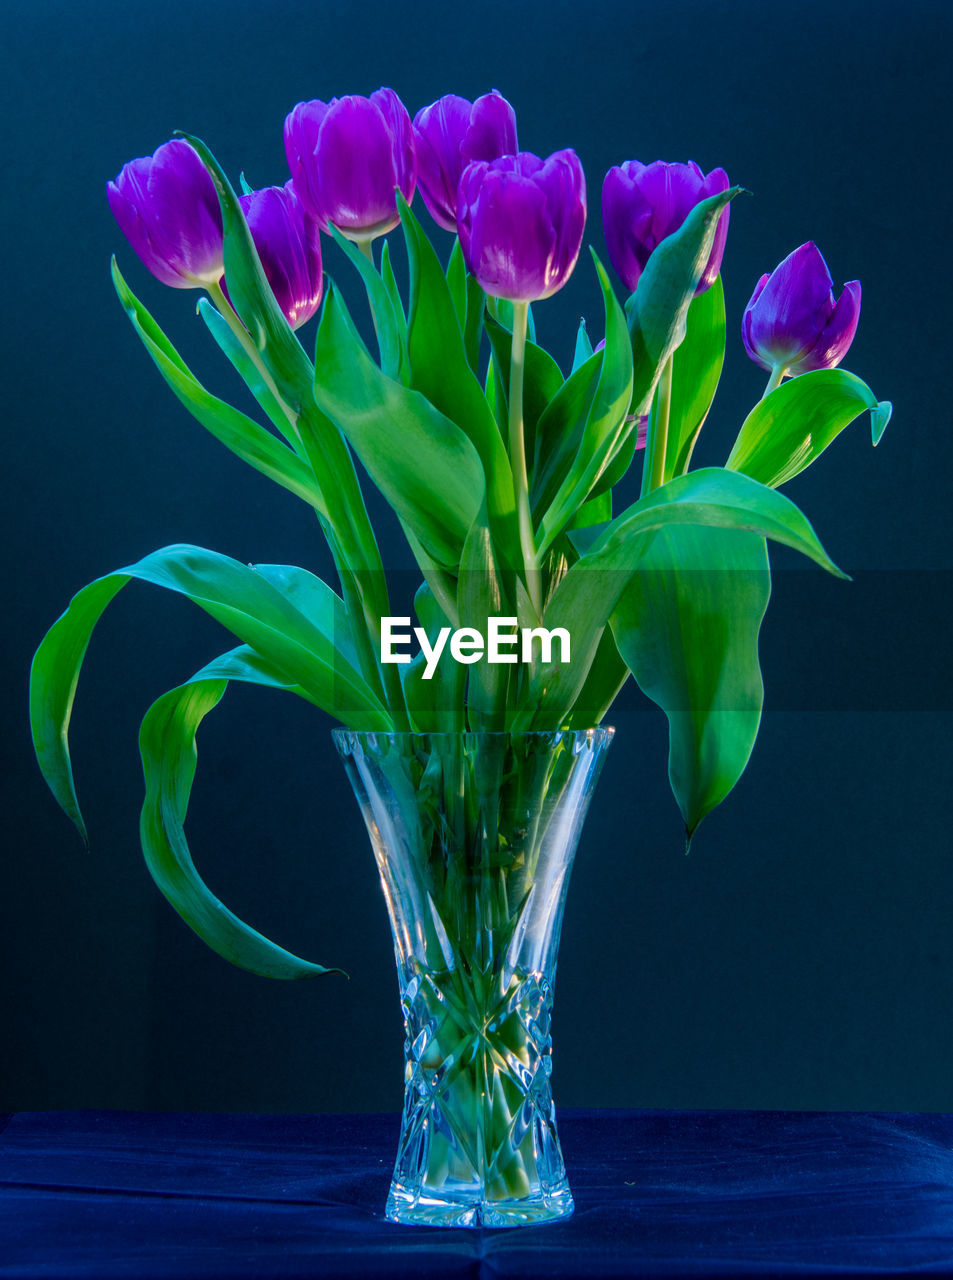 vase, flower, plant, flowering plant, indoors, vulnerability, beauty in nature, no people, close-up, nature, fragility, table, freshness, studio shot, petal, green color, water, glass - material, colored background, flower head, flower arrangement, glass, purple, black background, blue background, bouquet